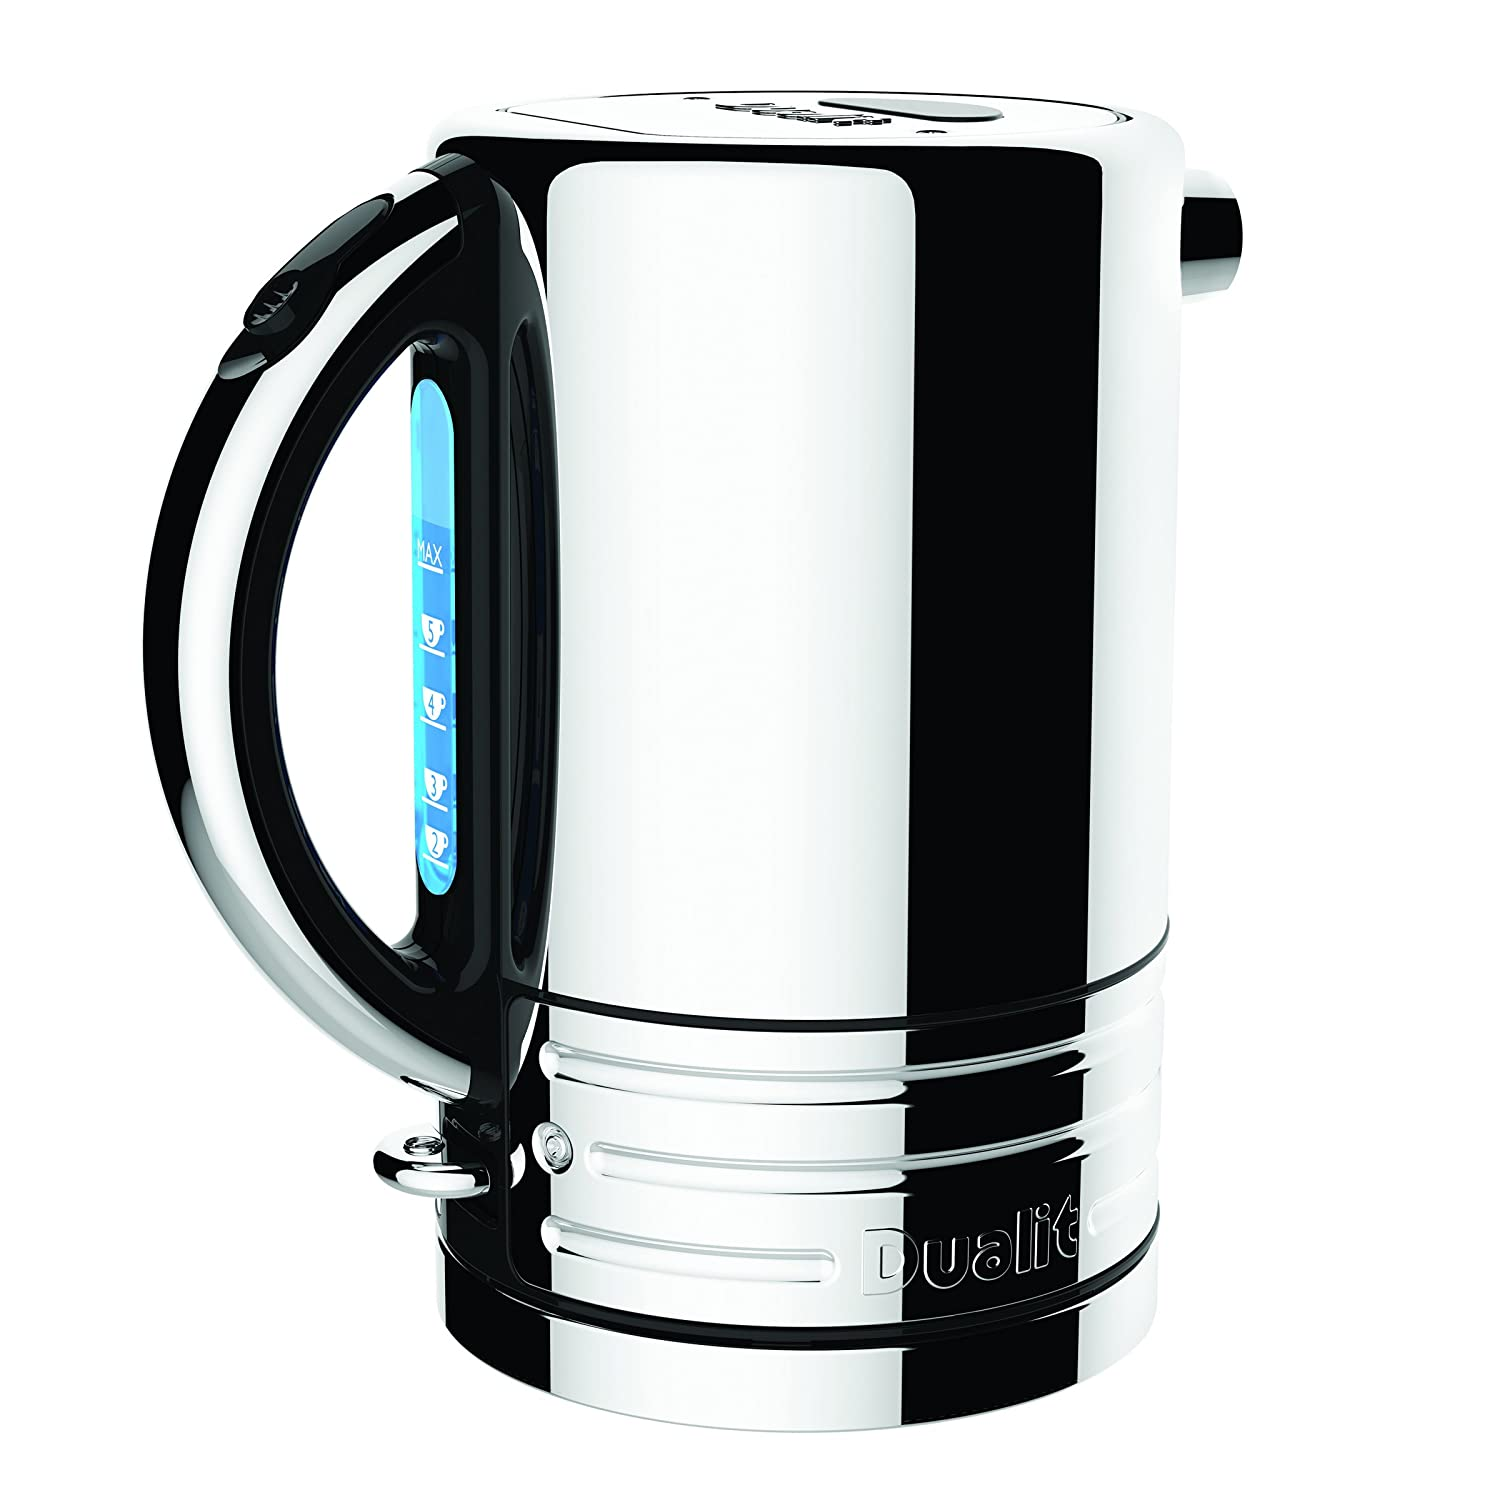 Amazoncom Dualit 72955 Design Series Kettle Black And Steel